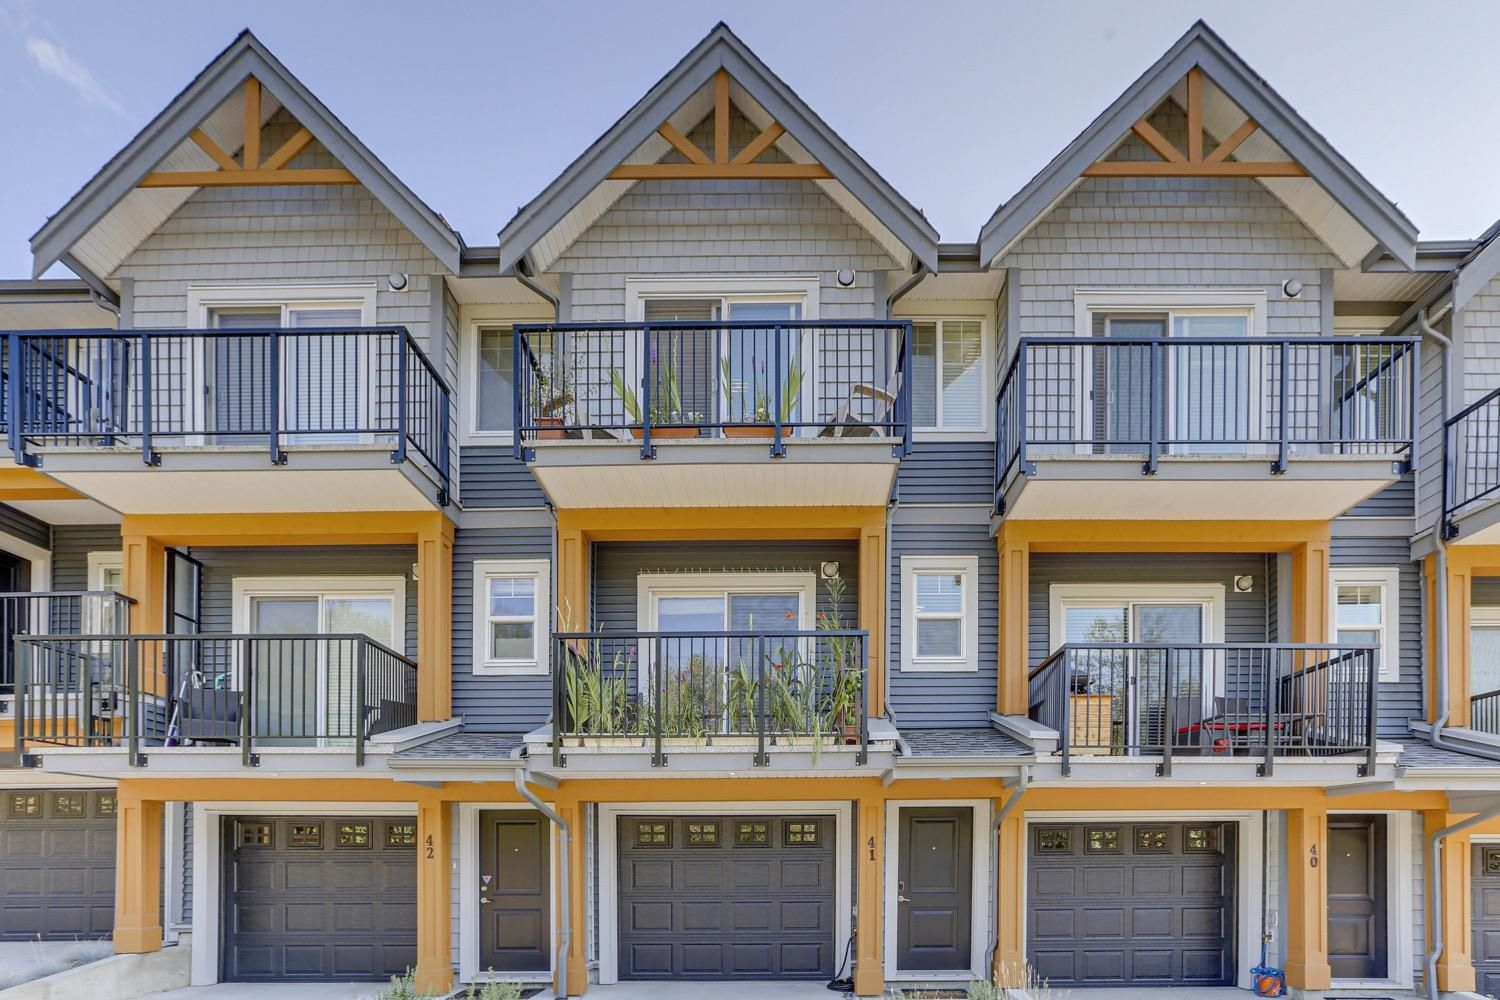 """Main Photo: 40 22810 113 Avenue in Maple Ridge: East Central Townhouse for sale in """"RUXTON VILLAGE"""" : MLS®# R2624686"""